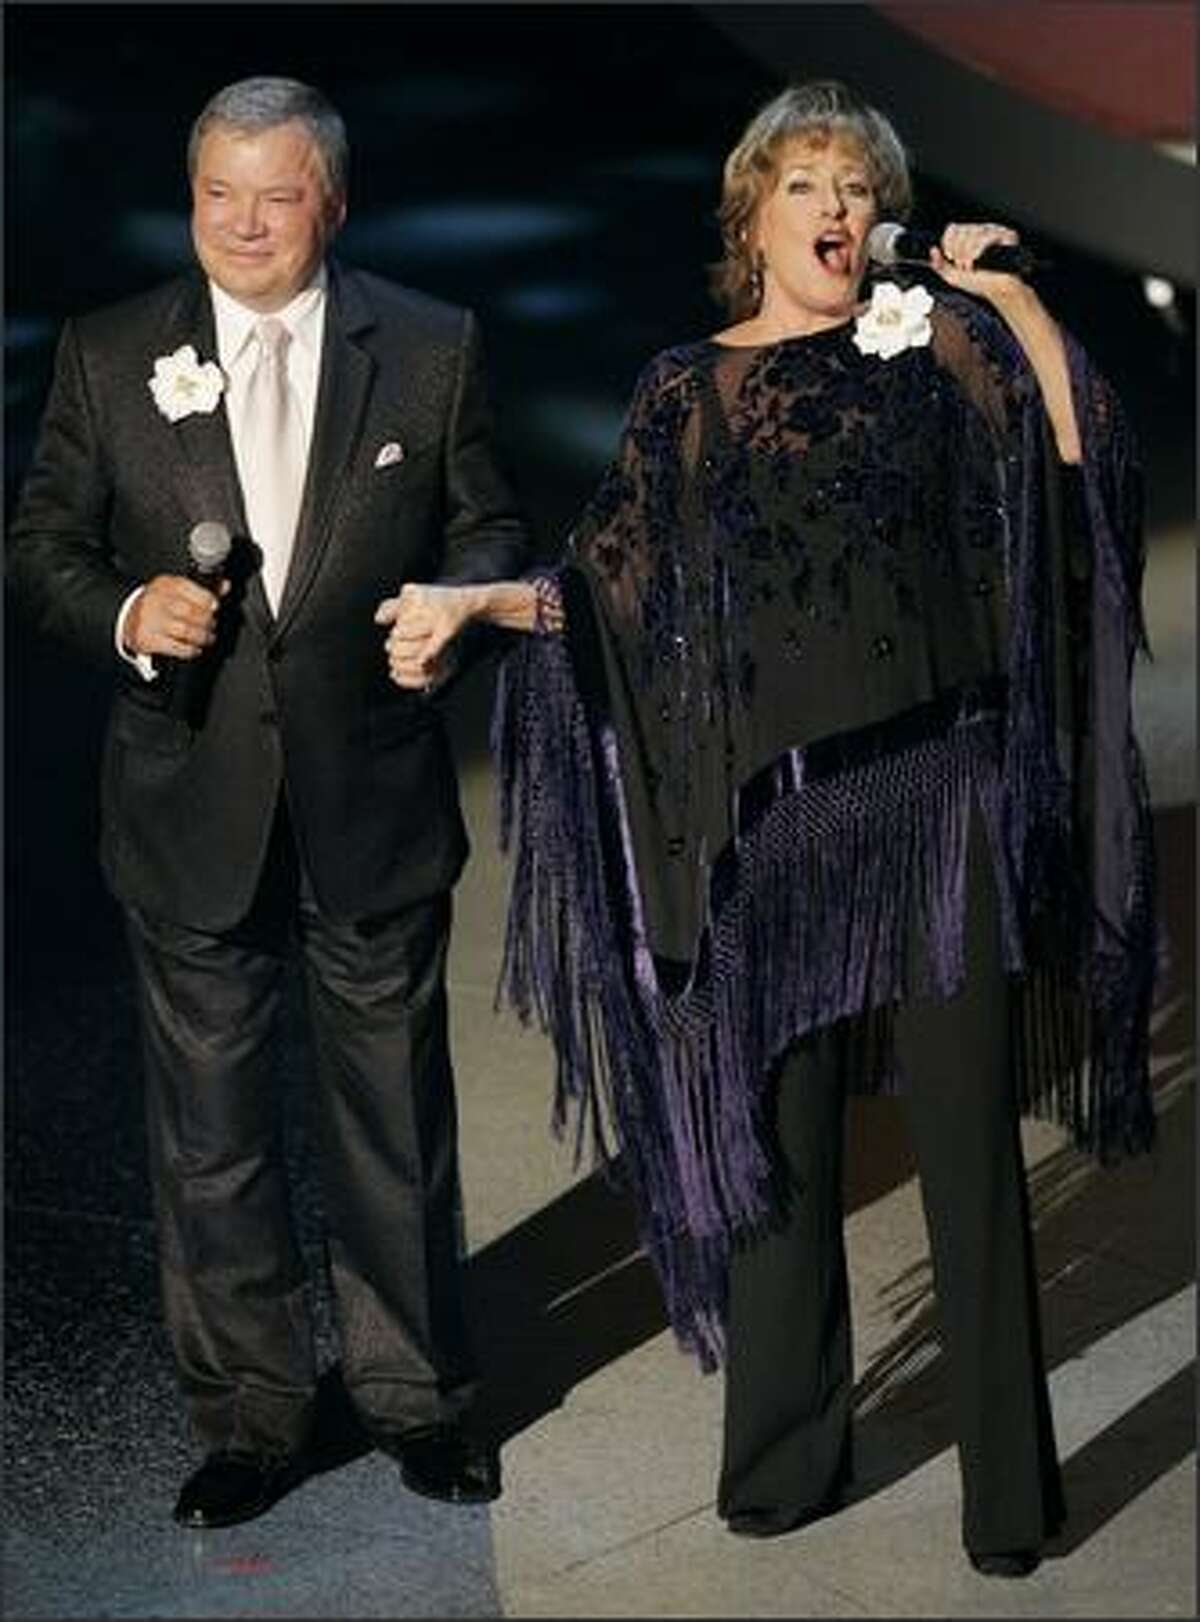 William Shatner and opera star Frederica Von Stade perform the